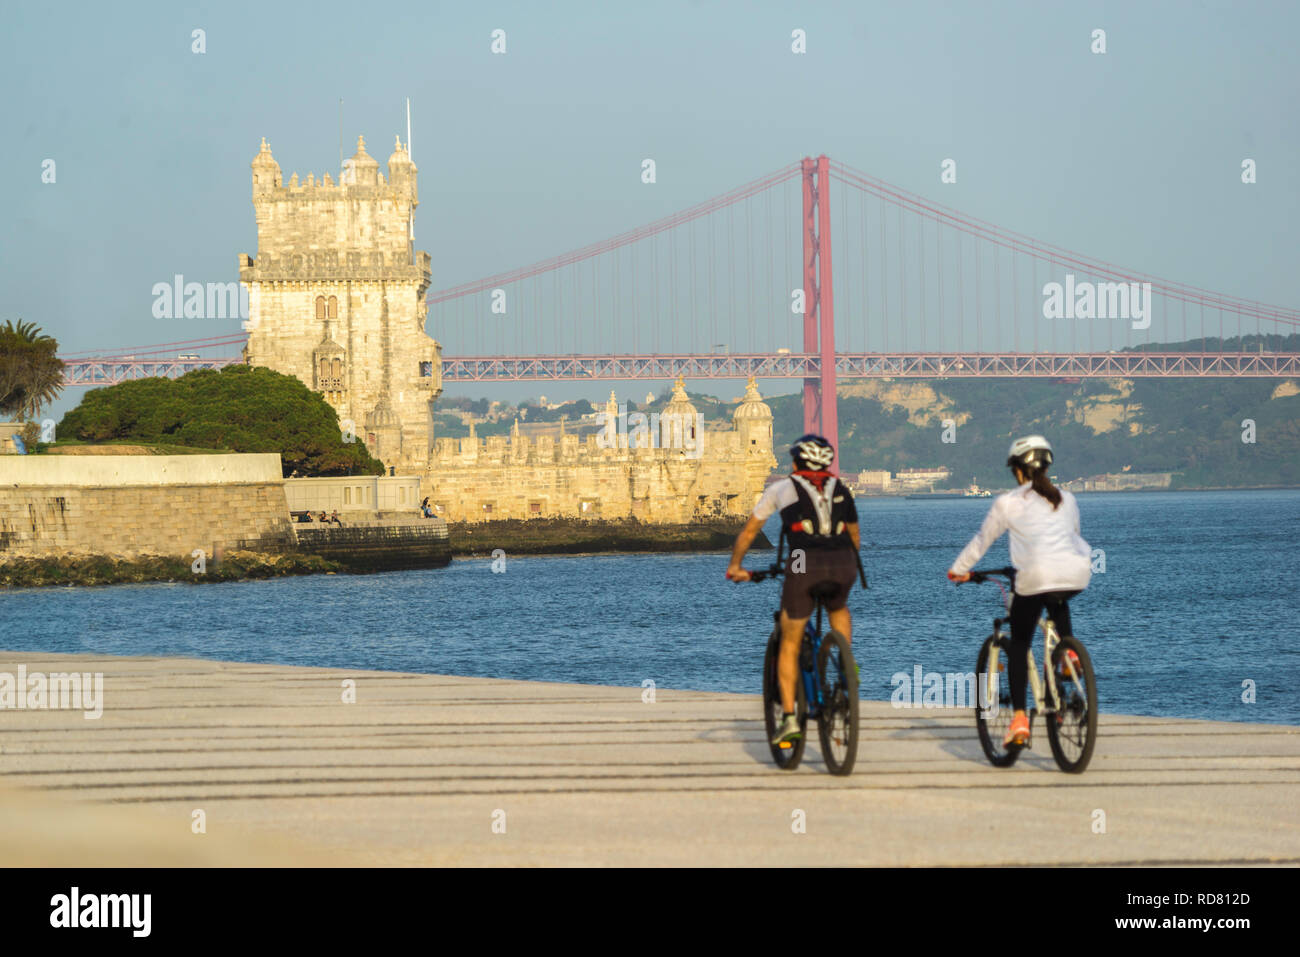 Lisbon, sportive people by the Tejo river - Stock Image